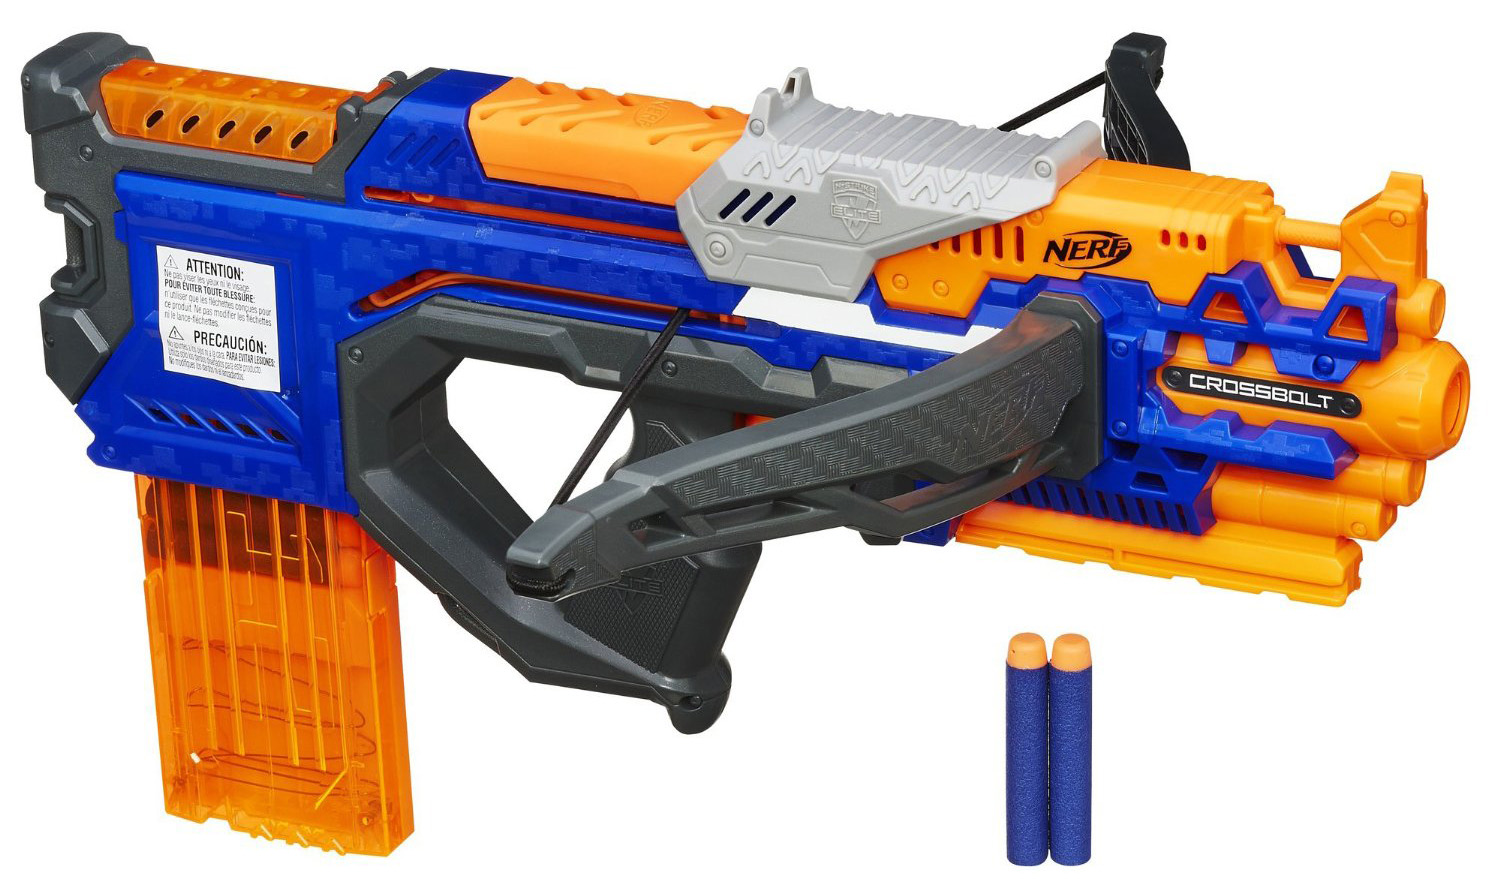 Toys: Save up to 50% off Nerf Blasters, Super Soakers, more plus Spalding NBA Mini Basketball Hoop $22 (Reg. $40)